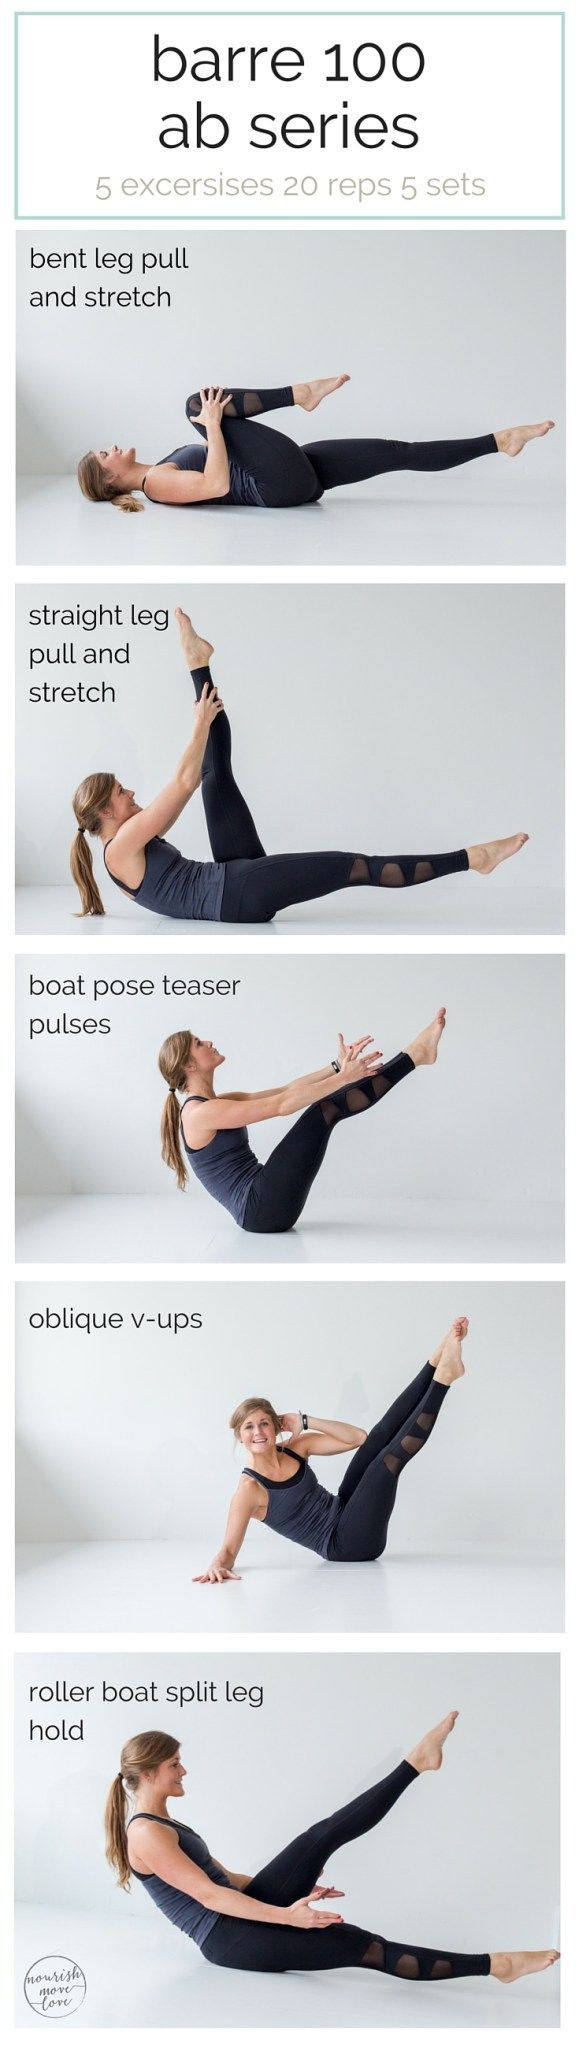 slim, cinch, and sculpt your abs with this barre-inspired core routine you can add onto any workout. so what are you waiting for? press play and barre your way toflatter abs   www.nourishmovelove.com